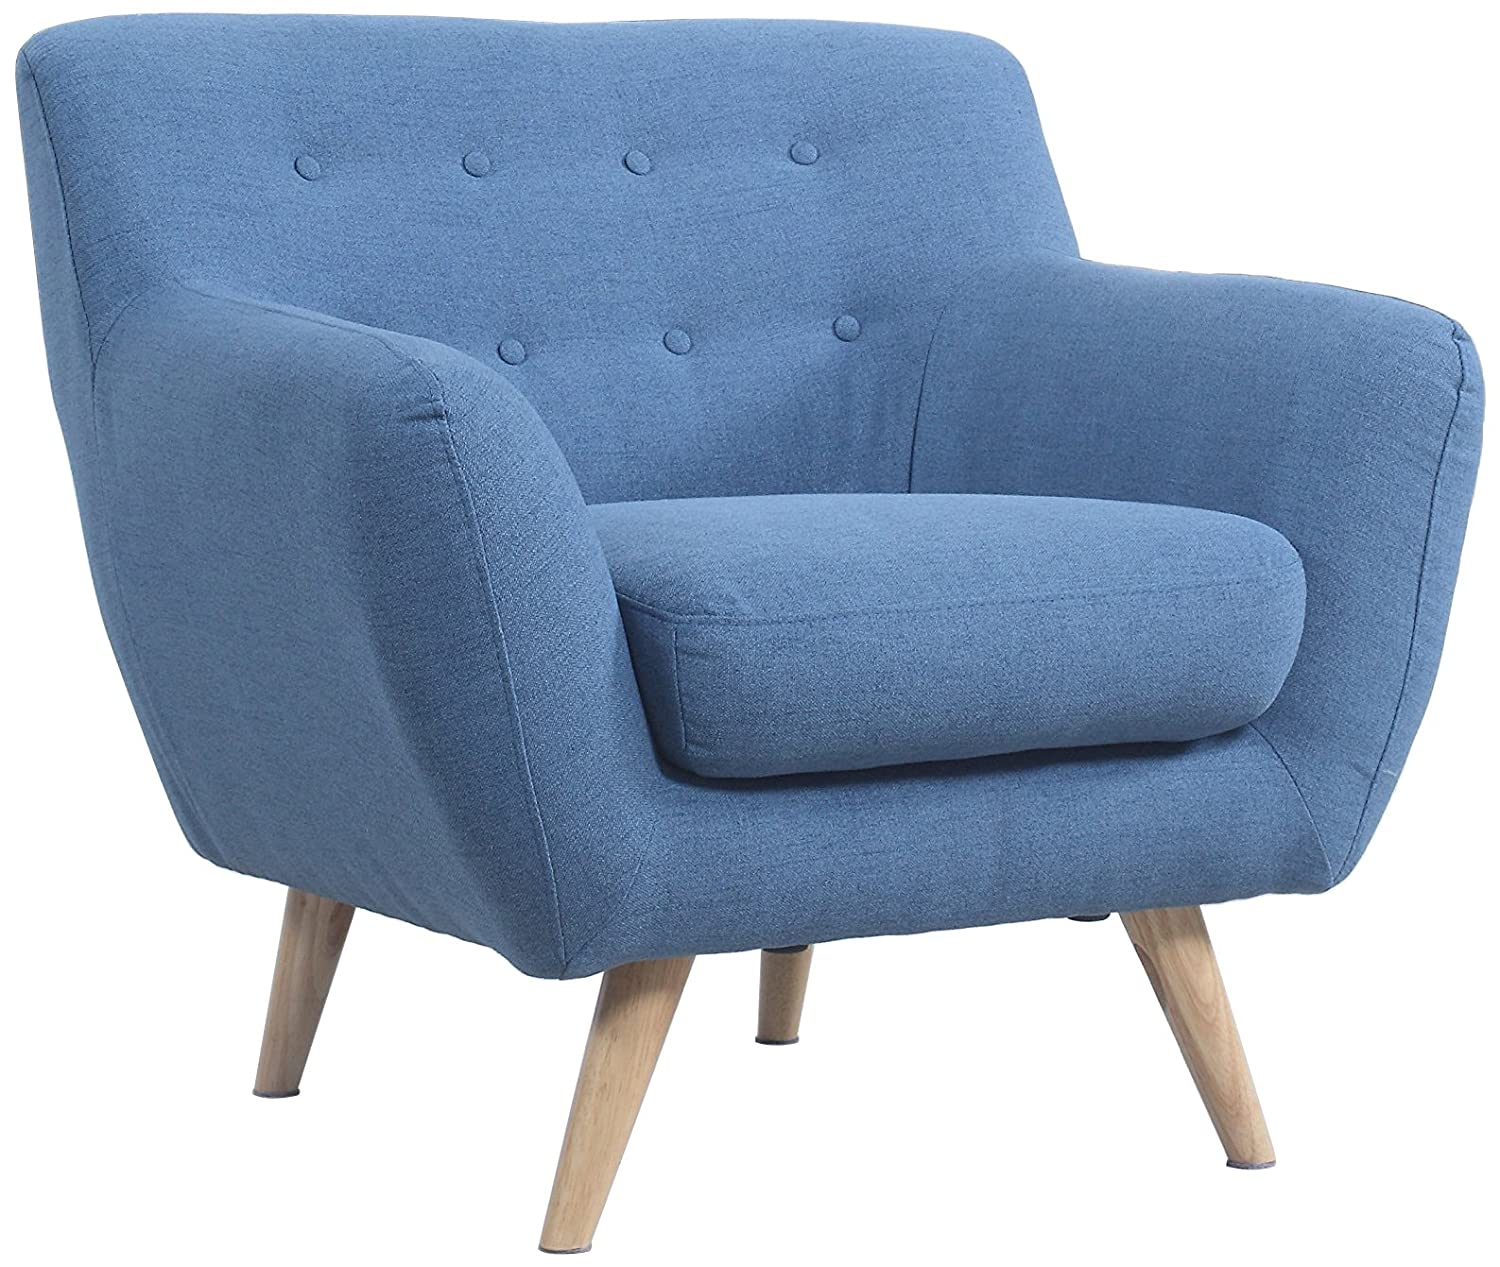 Excellent Modern Mid Century Loveseat Chair Pdpeps Interior Chair Design Pdpepsorg